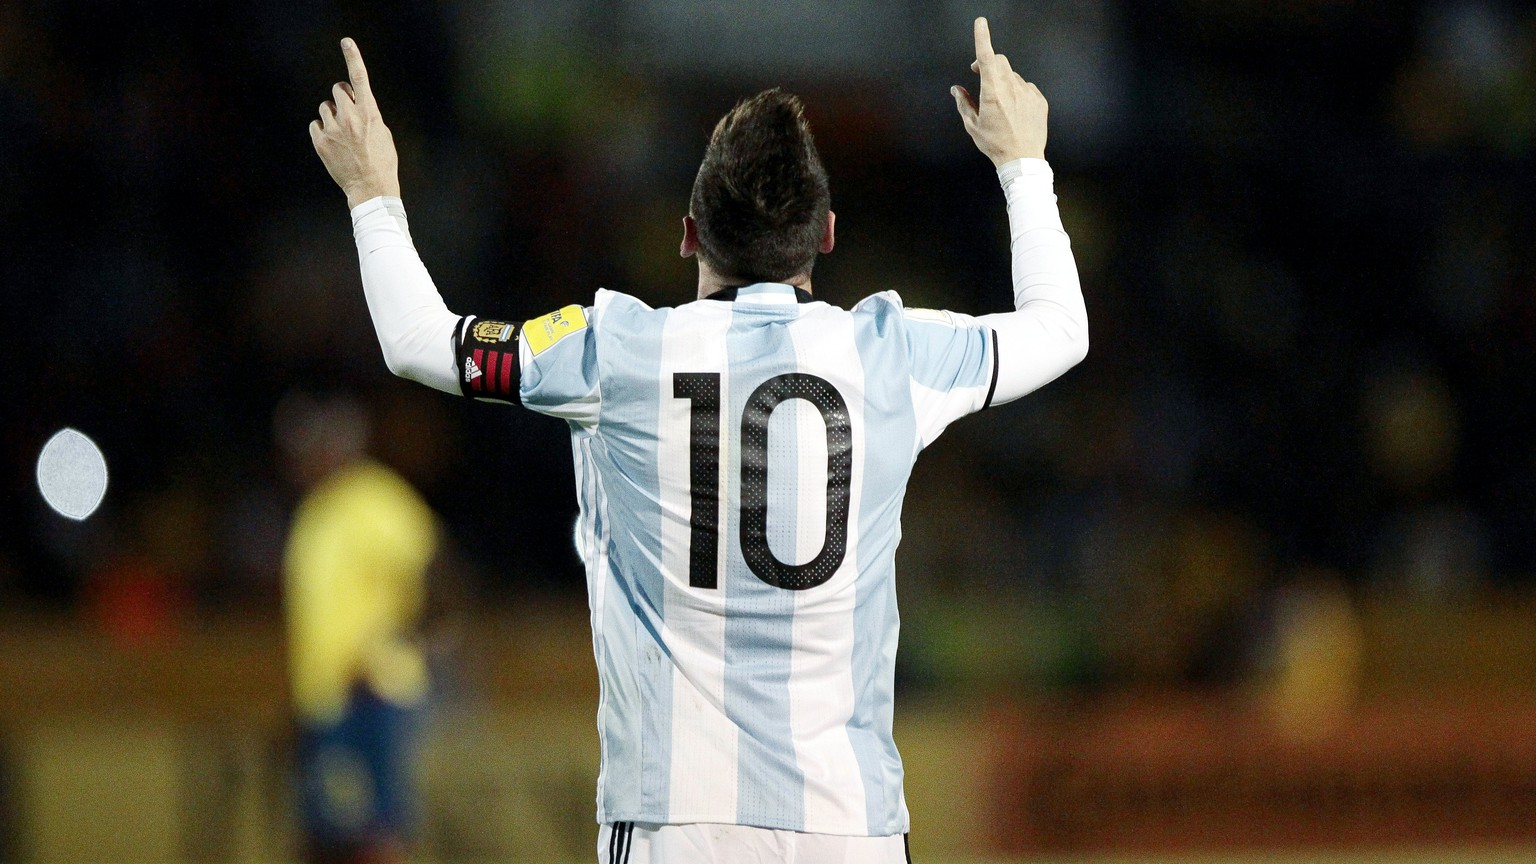 epa06258029 Argentina's Lionel Messi celebrates after scoring the FIFA World Cup 2018 qualifying soccer match between Ecuador and Argentina at the Atahualpa Stadium in Quito, Ecuador, 10 October 2017.  EPA/JOSE JACOME